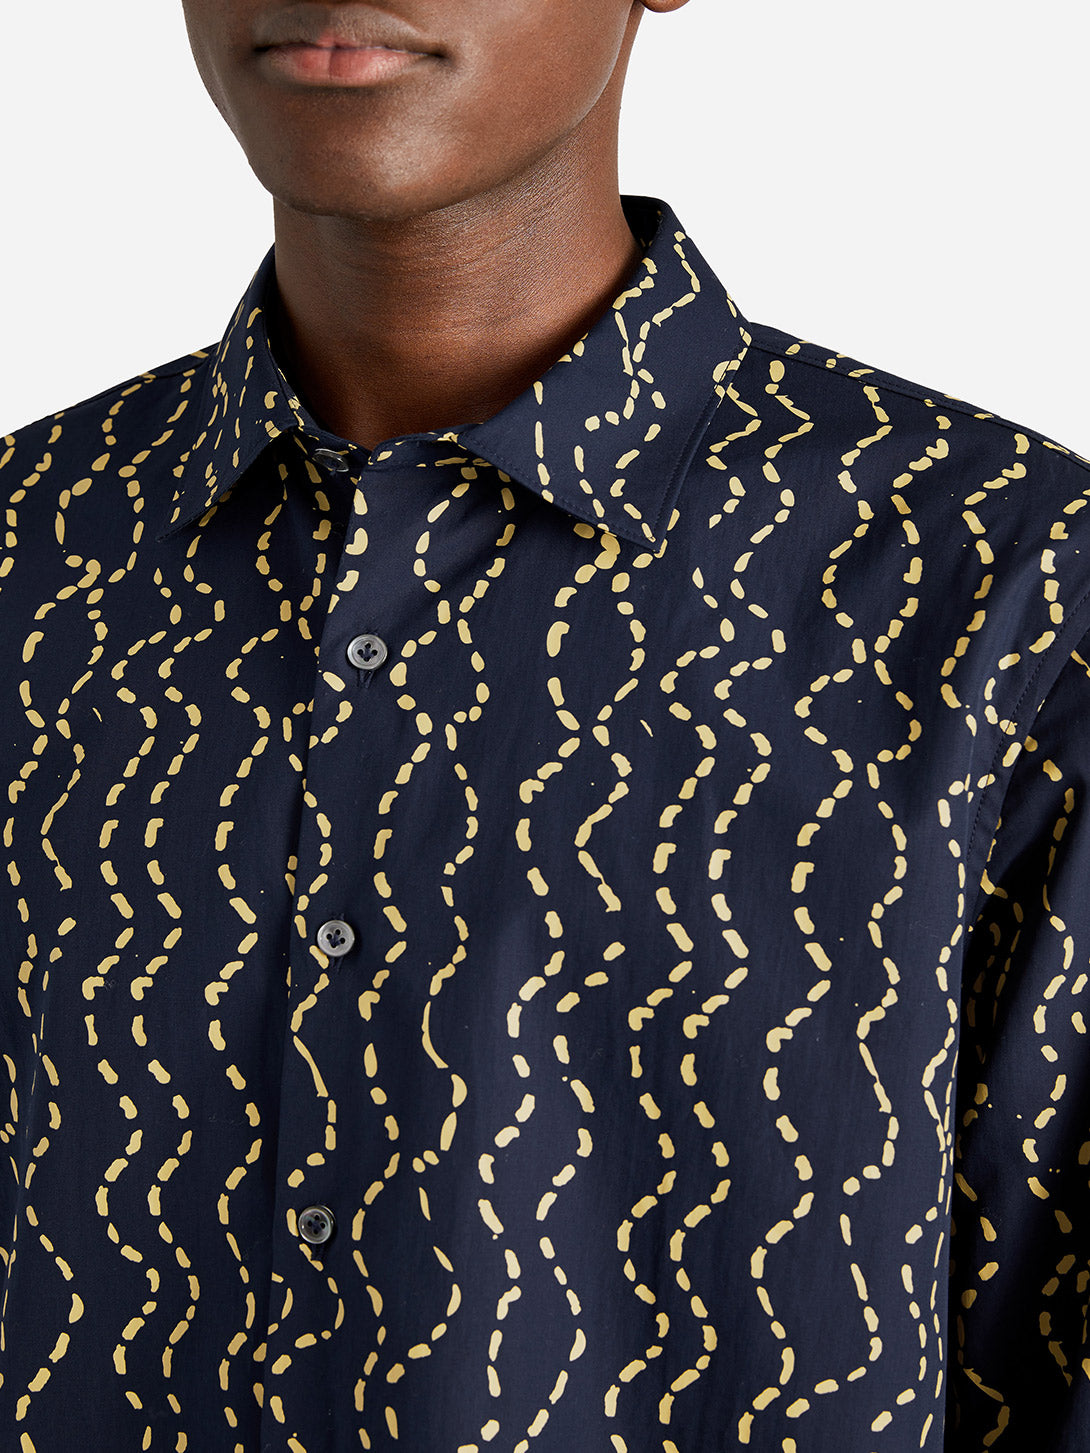 ISSA DRESS SHIRT NAVY WAVE - ONS Clothing